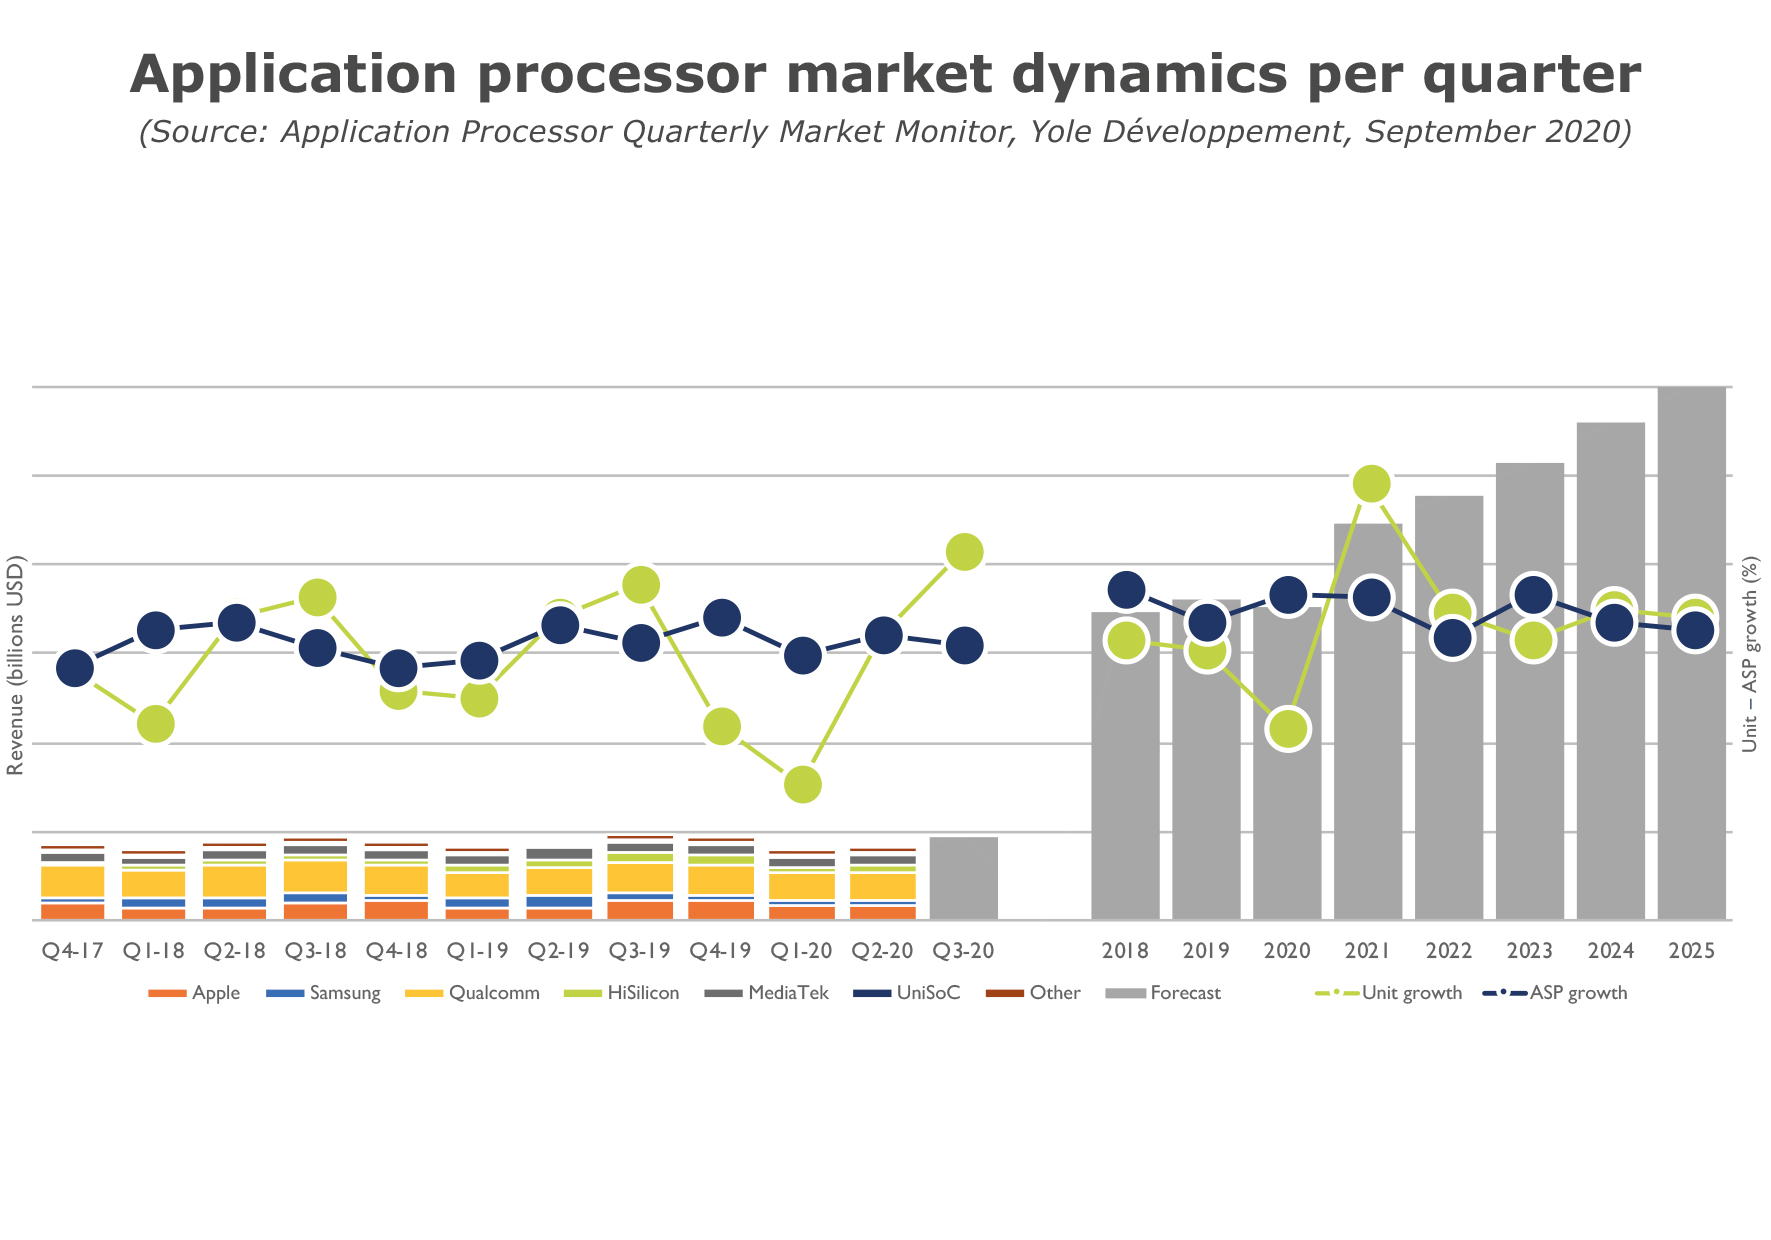 Application processor market dynamics per quarter